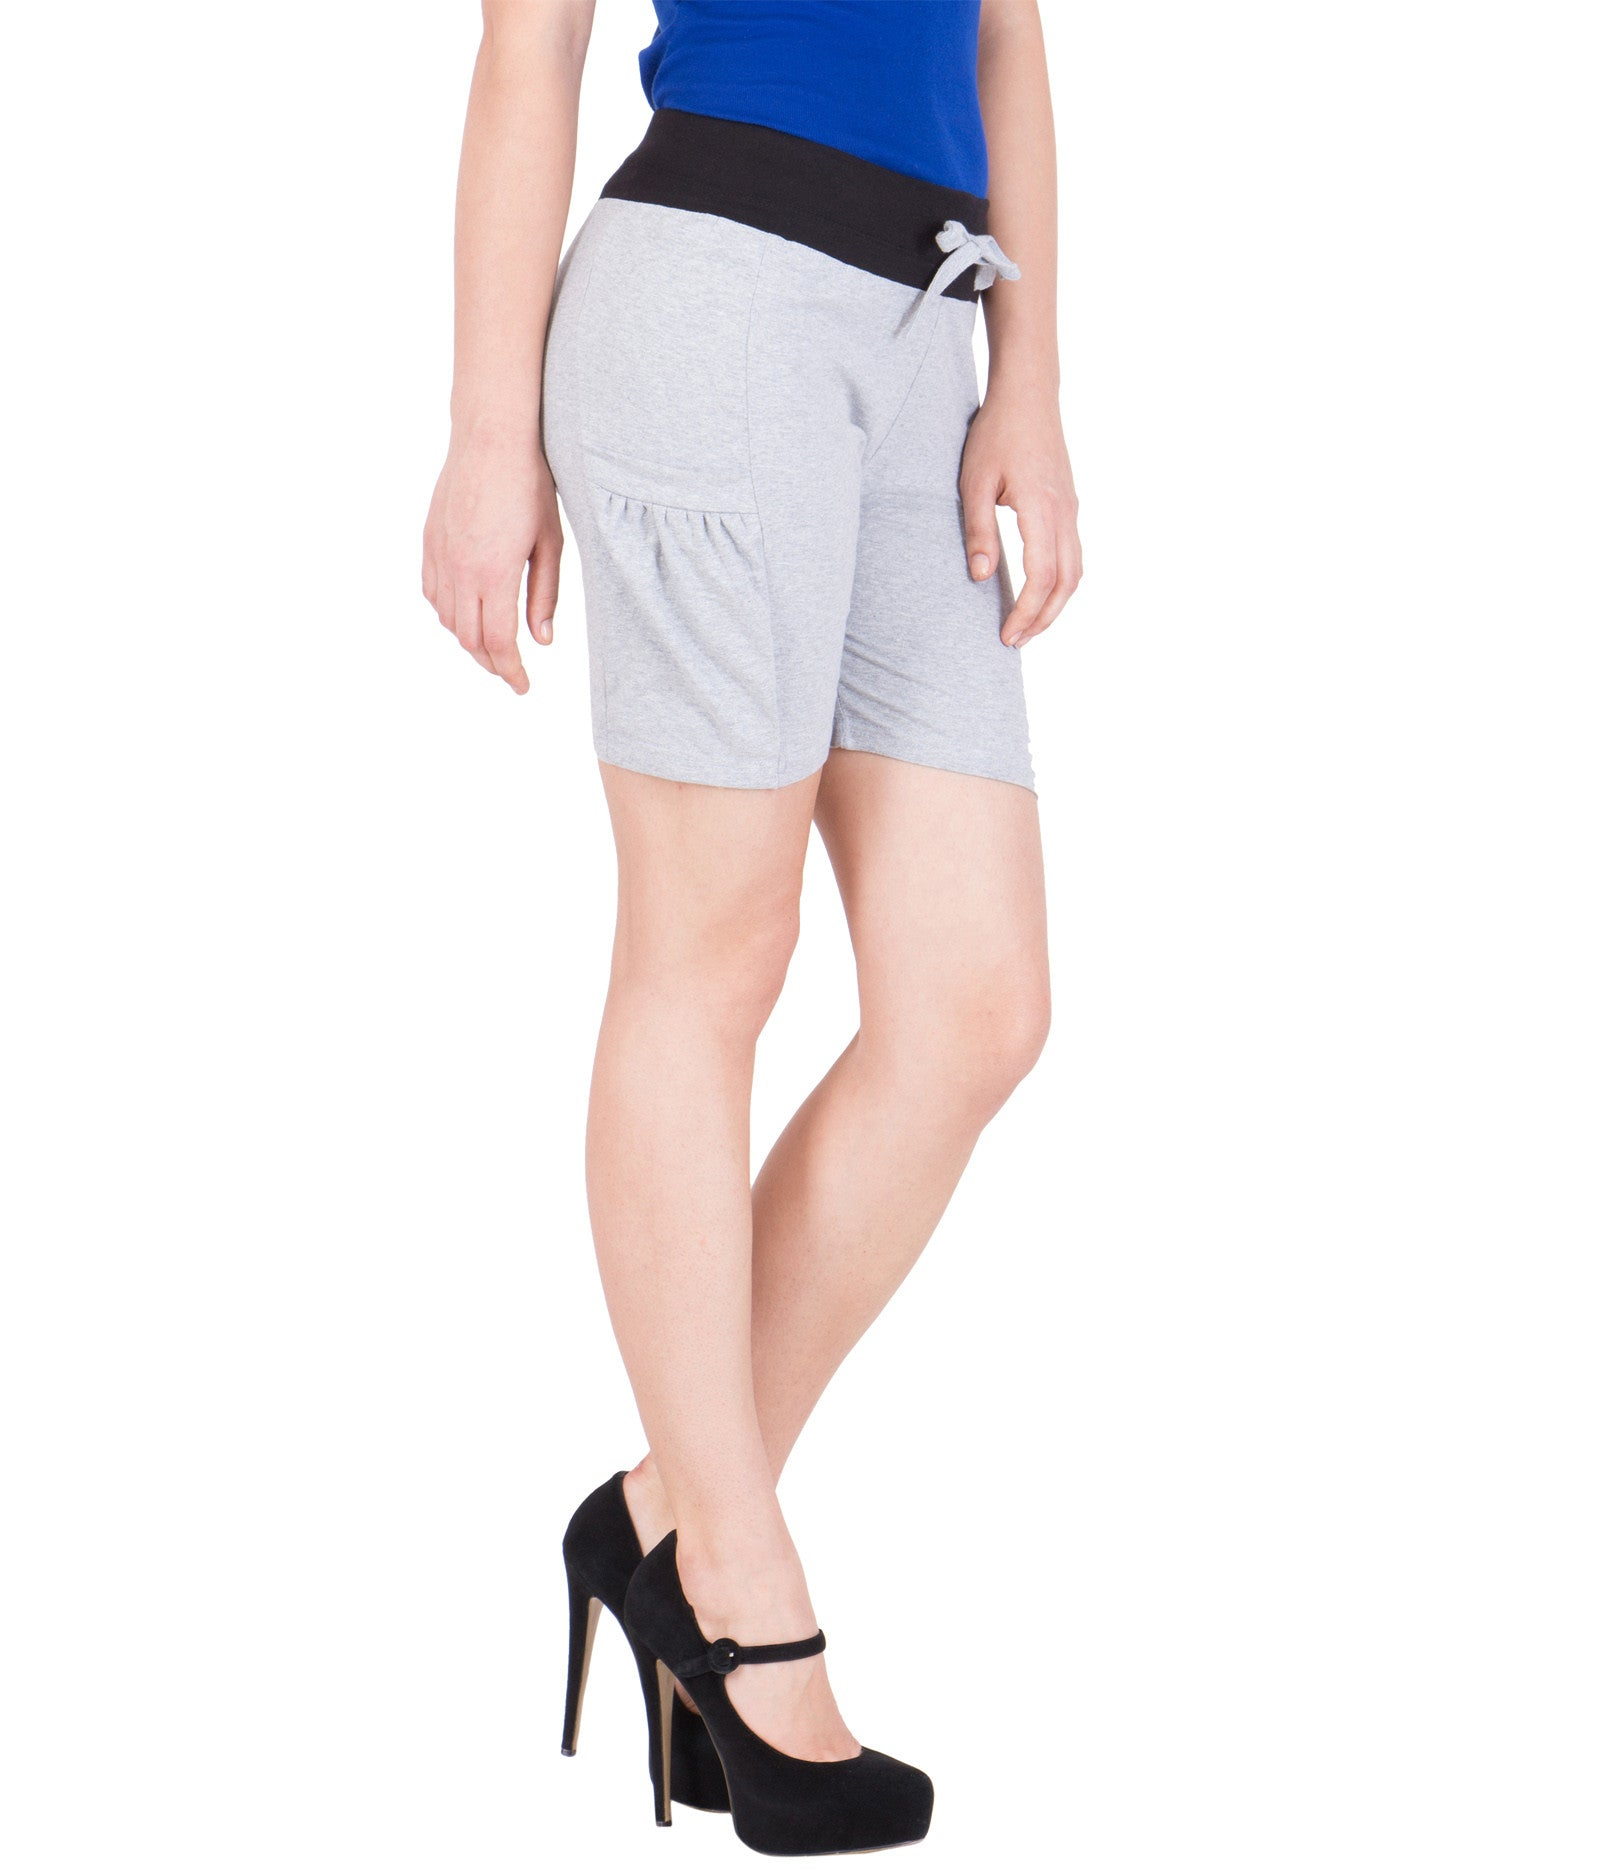 ... AMERICAN ELM-Women s Beautiful Cotton Stitched Shorts - HS-15-Grey-17  ... 48fd122a1